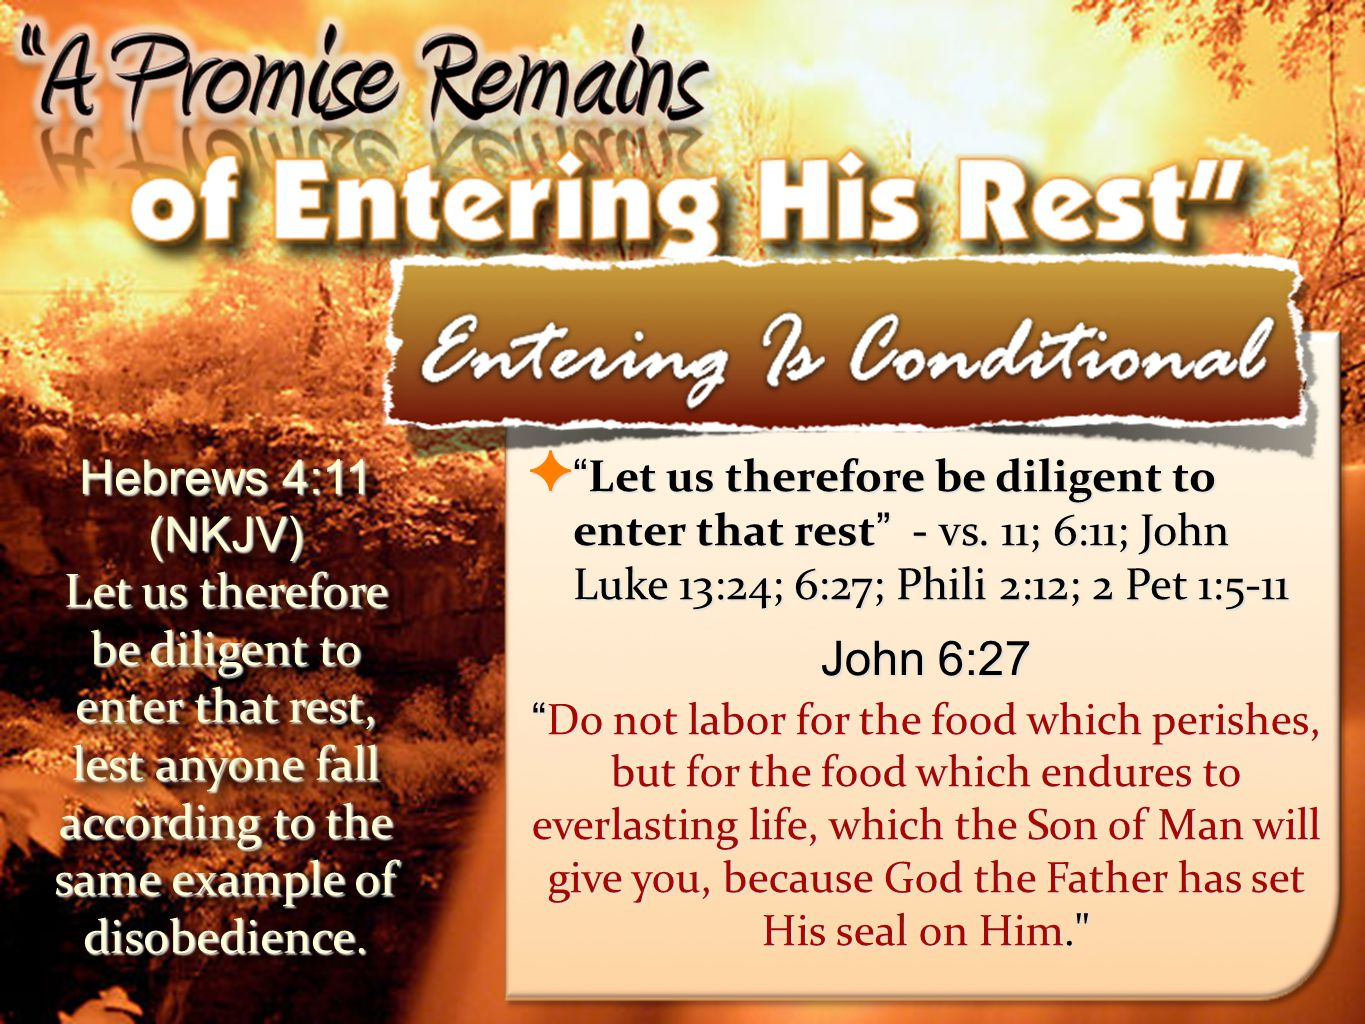 25 Let us therefore be diligent to enter that rest - vs.